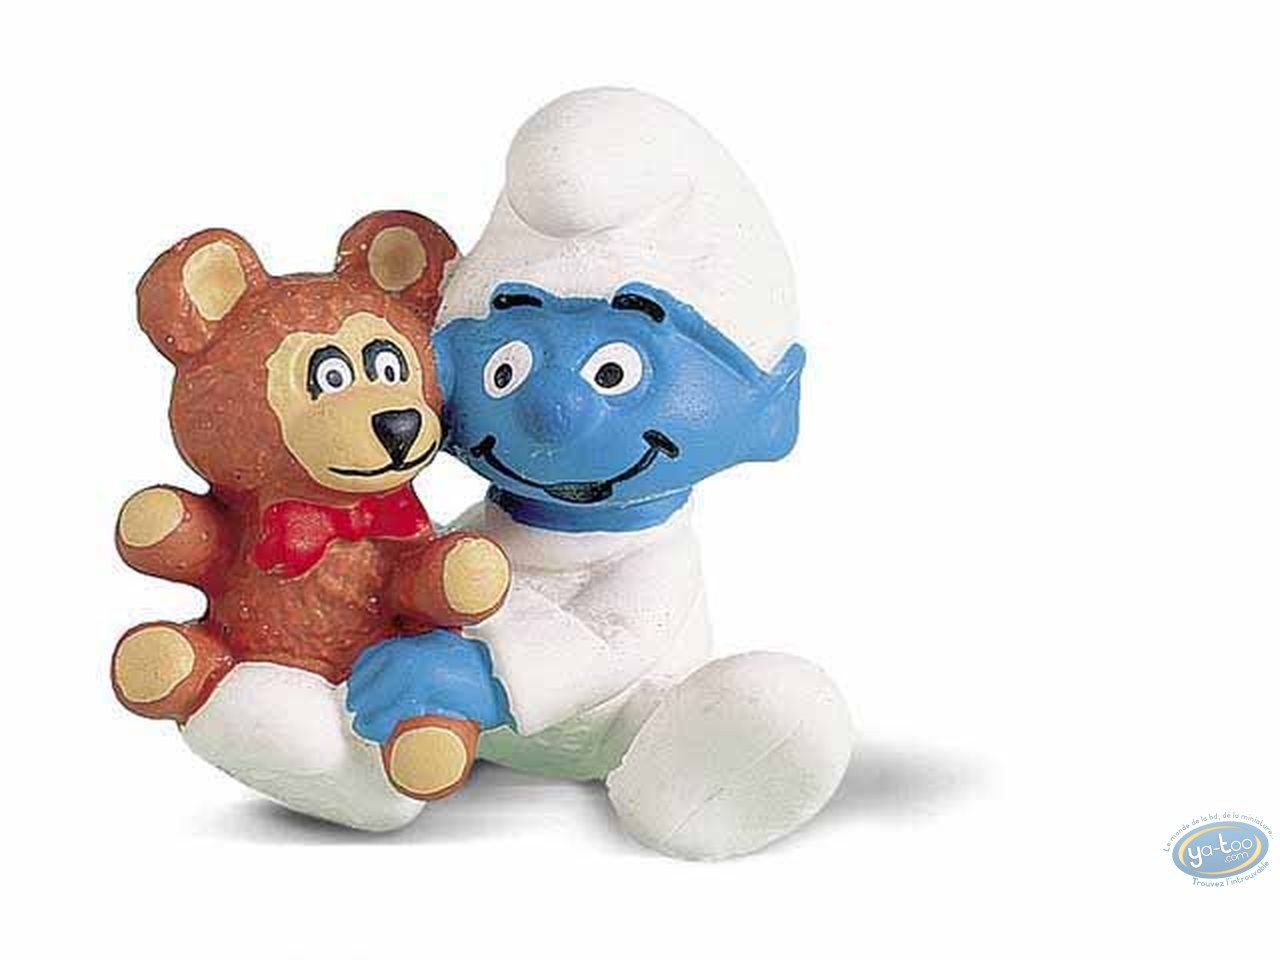 Plastic Figurine, Smurfs (The) : Baby Smurf with his teddy bear